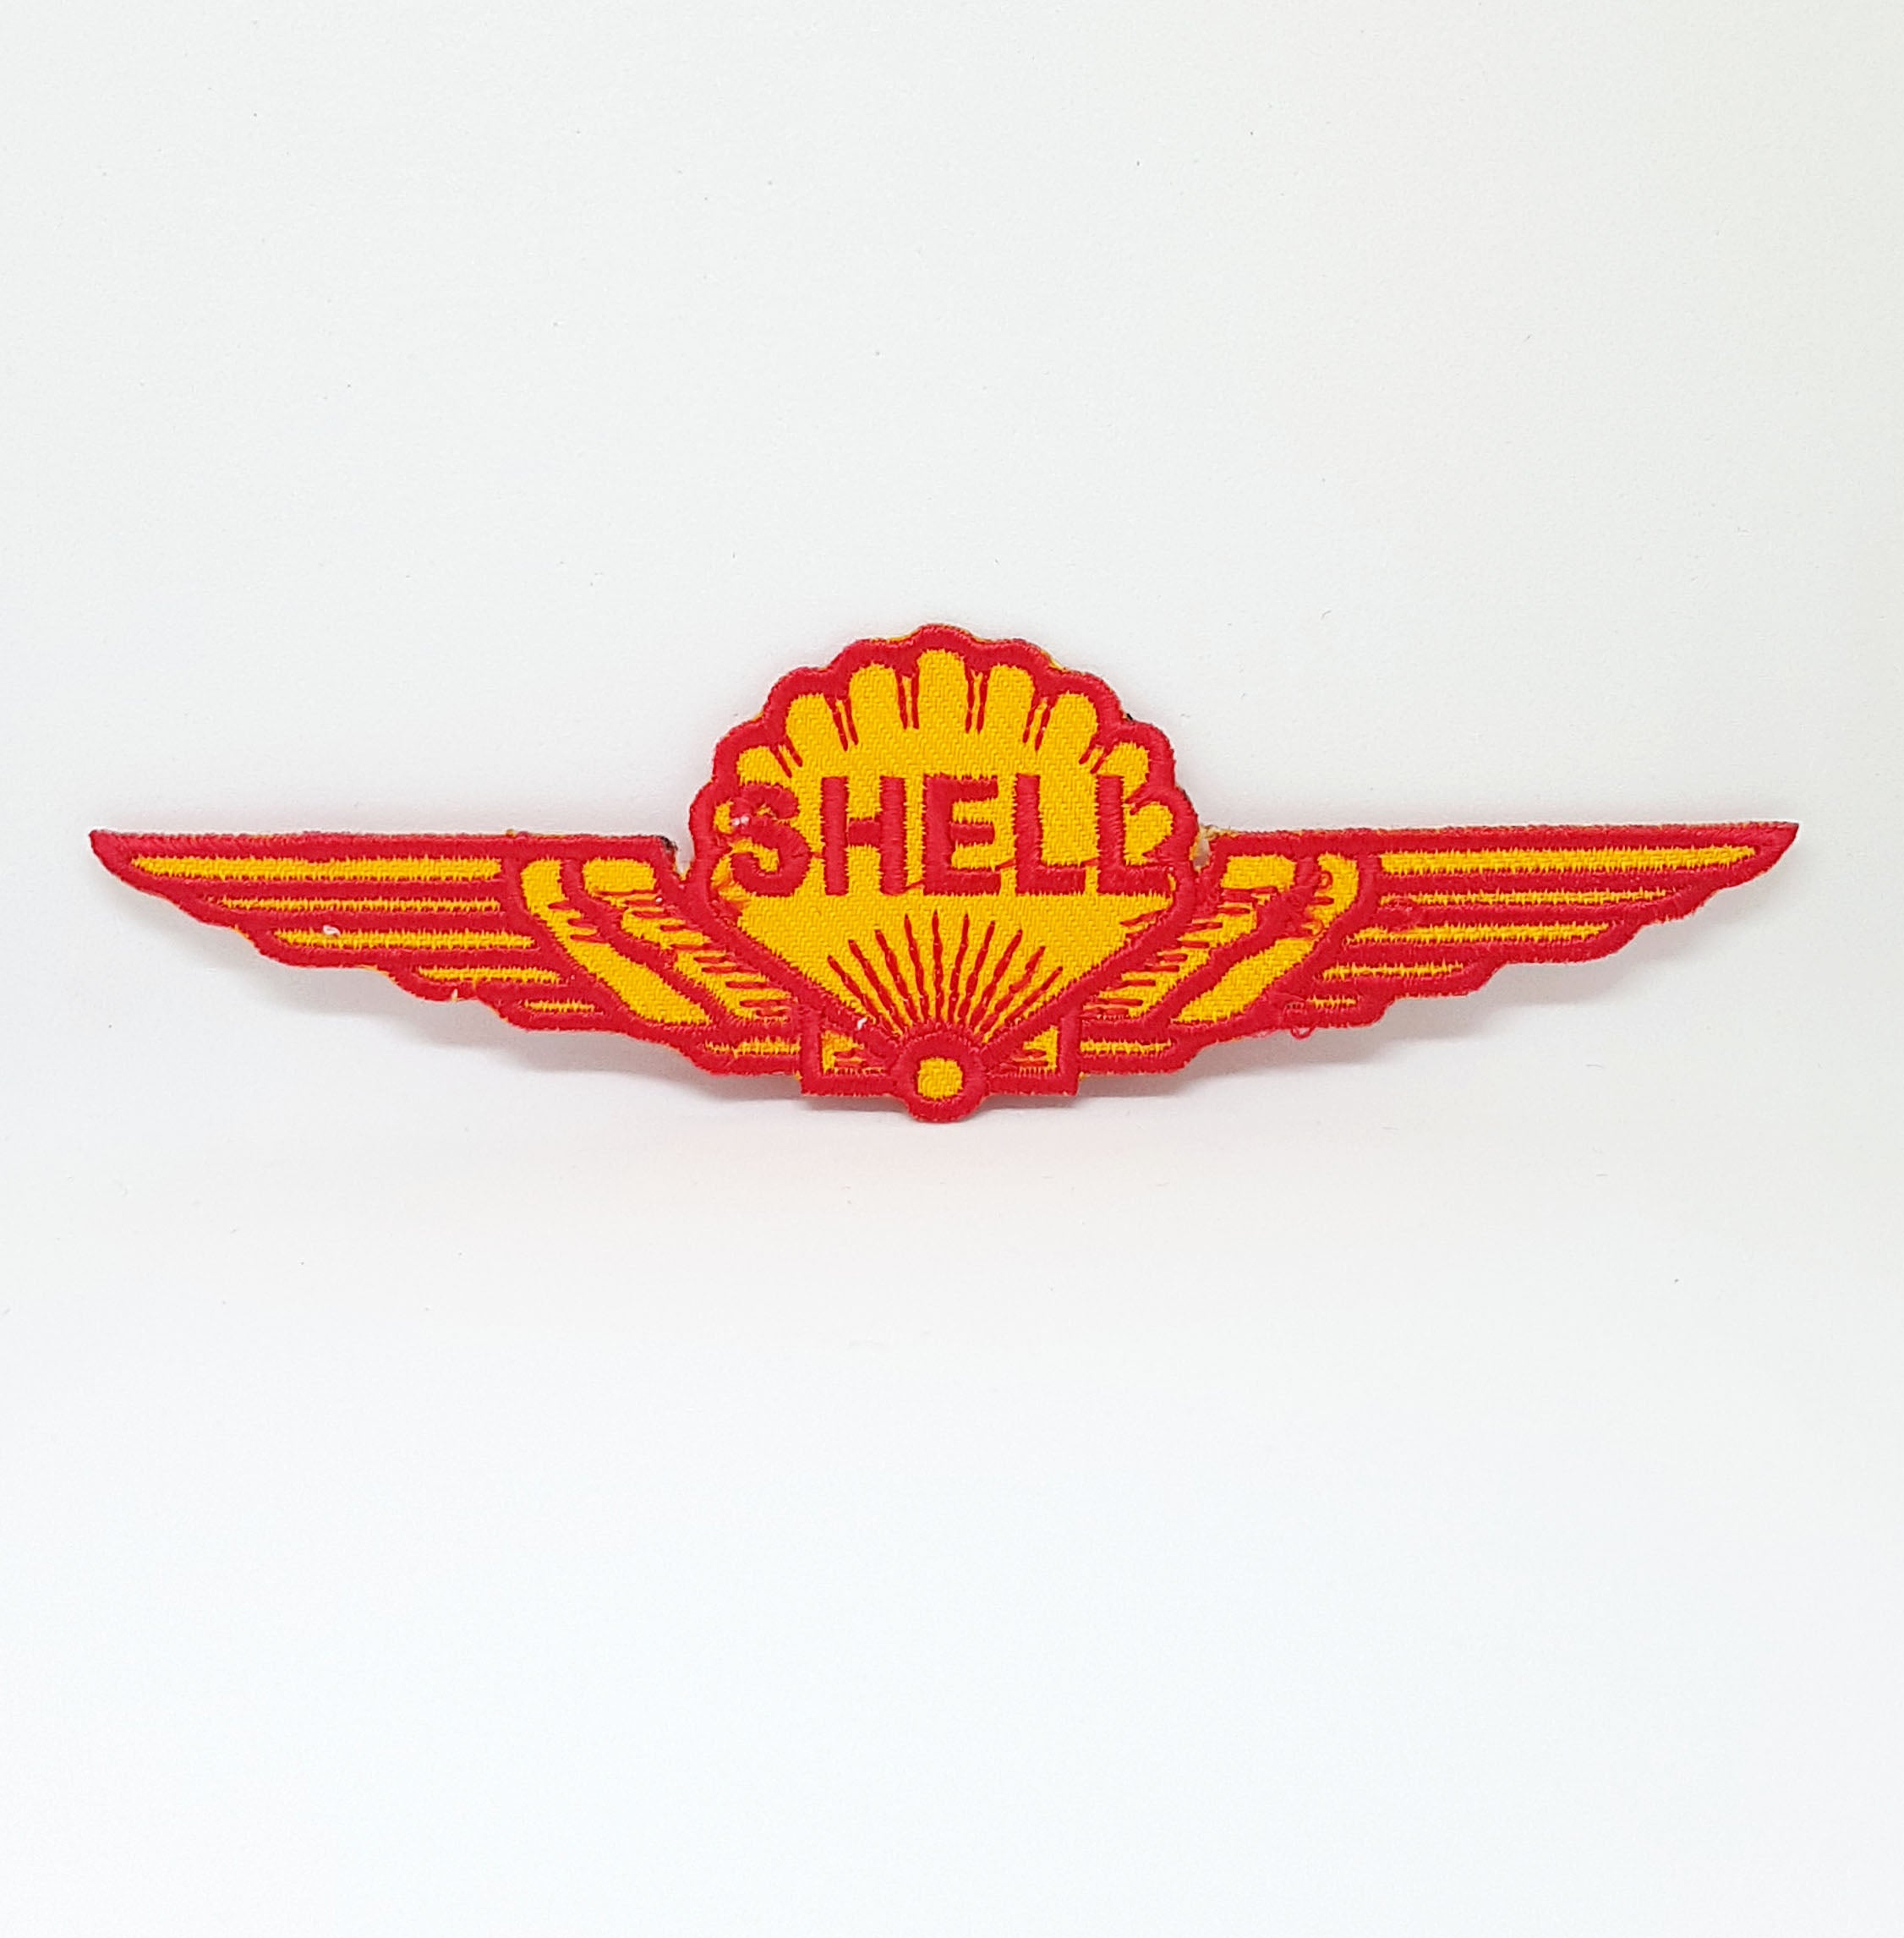 Shell wings gasoline motor oil Iron Sew on Embroidered Patch